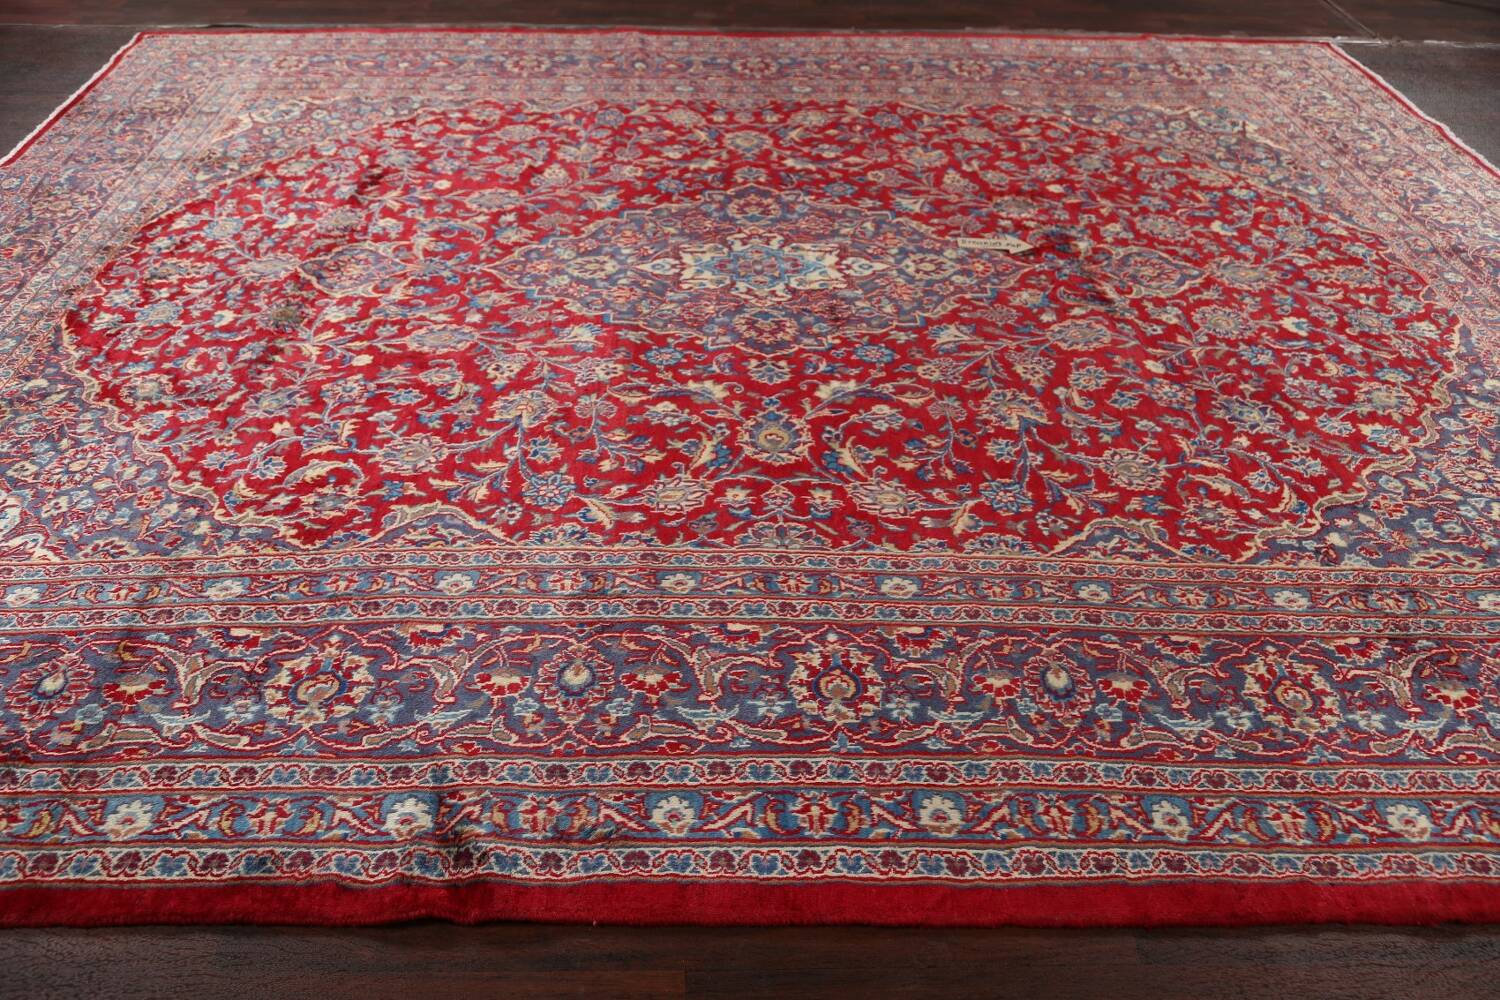 Vintage Floral Red Mashad Persian Area Rug 10x12 image 14